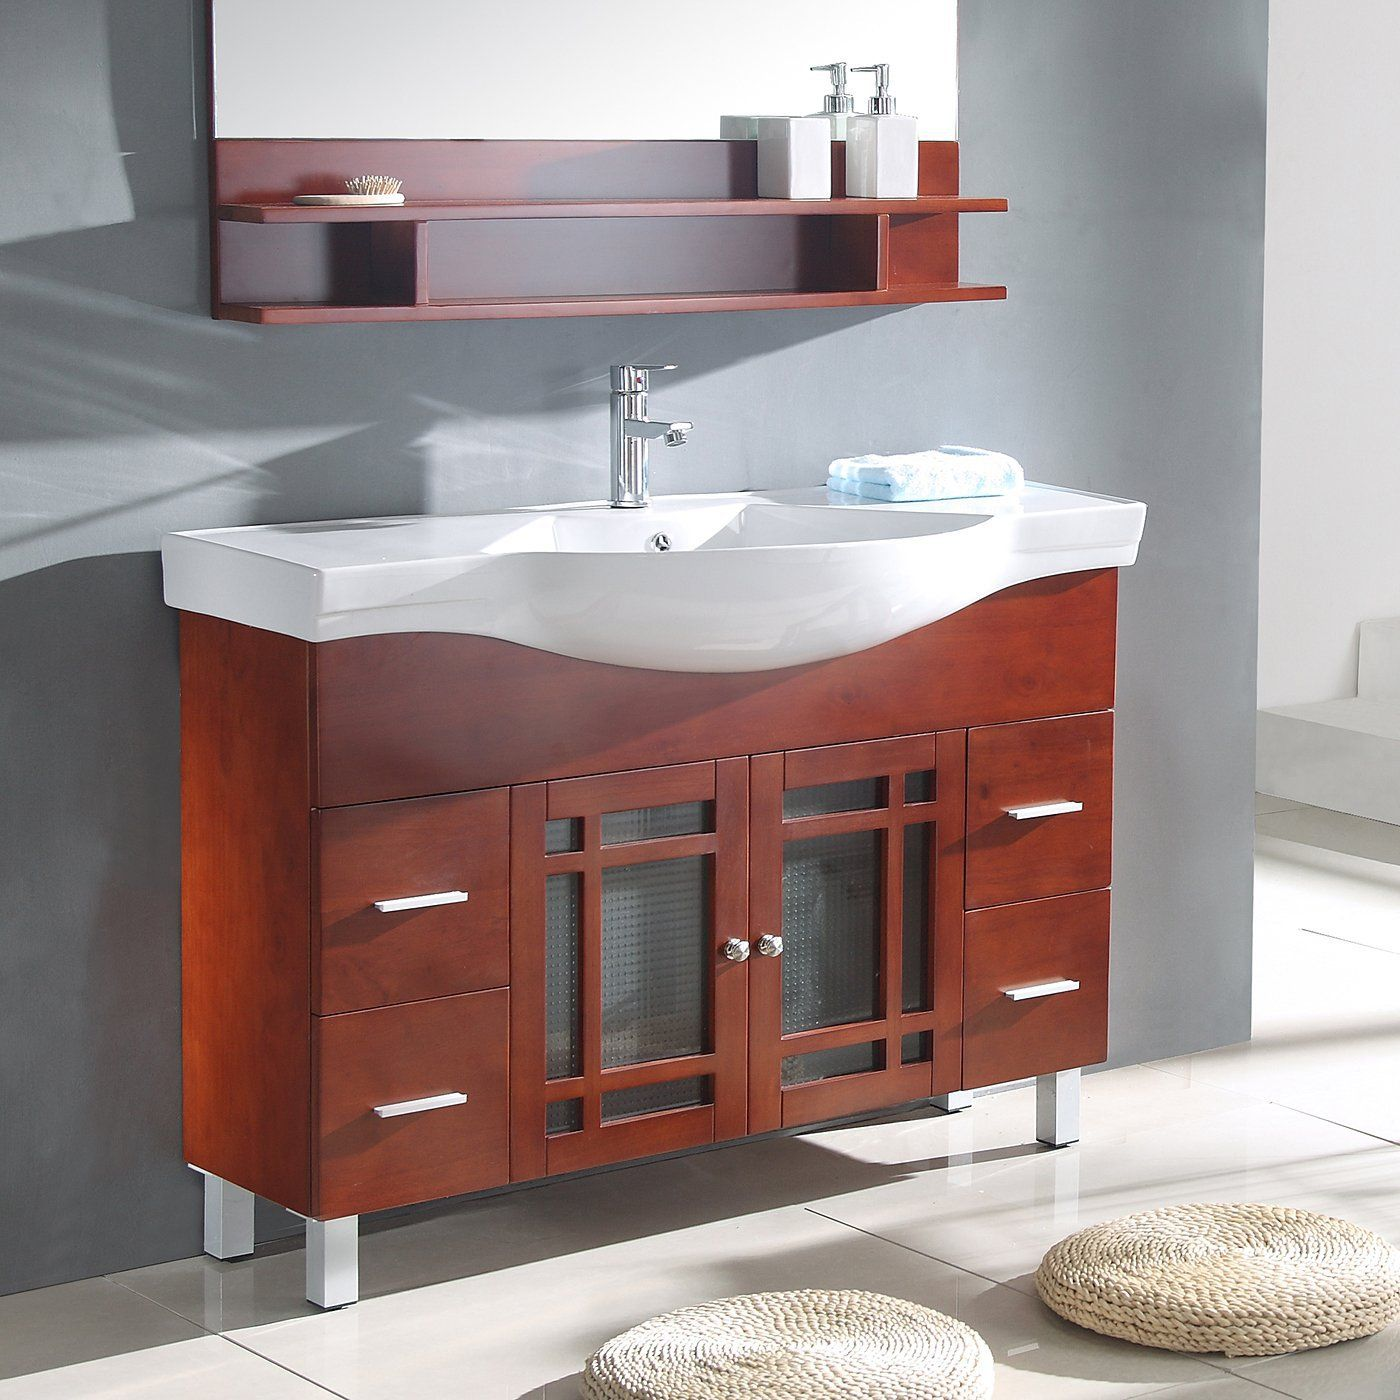 Narrow Depth Bathroom Vanities Home Design Ideas Vanity Gallery For Narrow Depth Bathroom Vanity How To Renovate A Narrow Depth Bat Narrow Bathroom Vanities Single Bathroom Vanity Master Bathroom Vanity